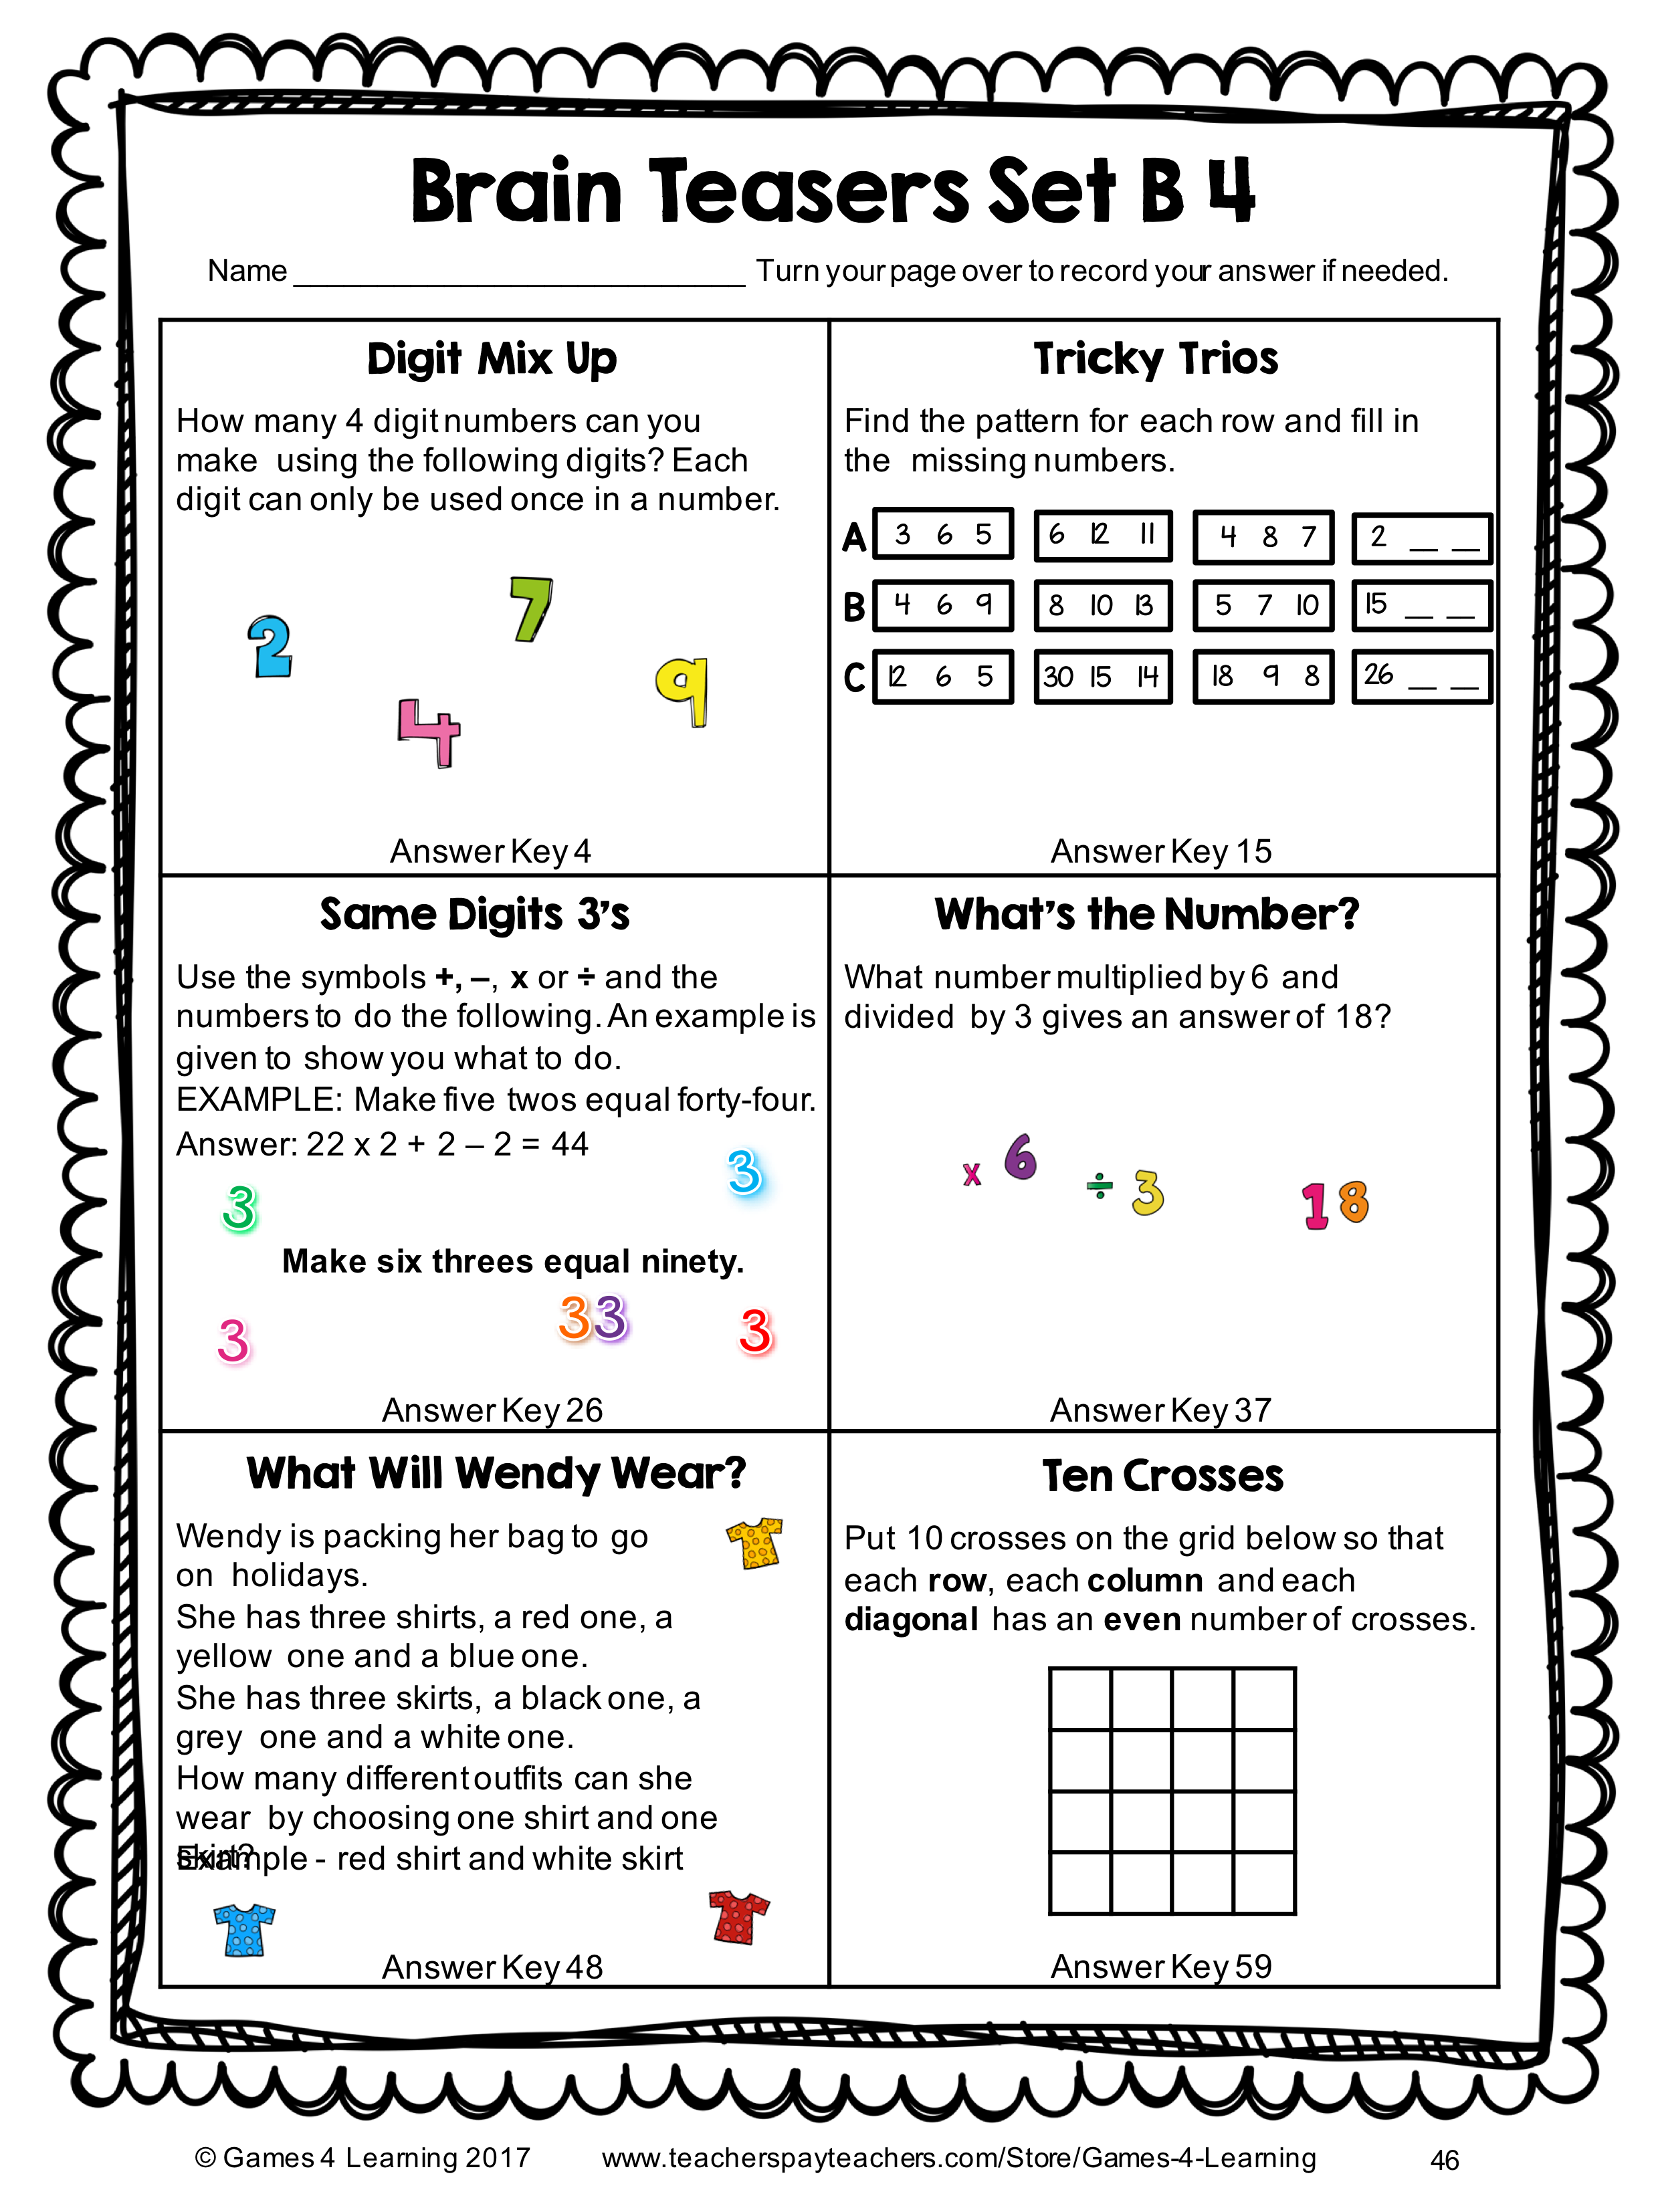 Math Task Cards Math Problems And Math Brain Teasers